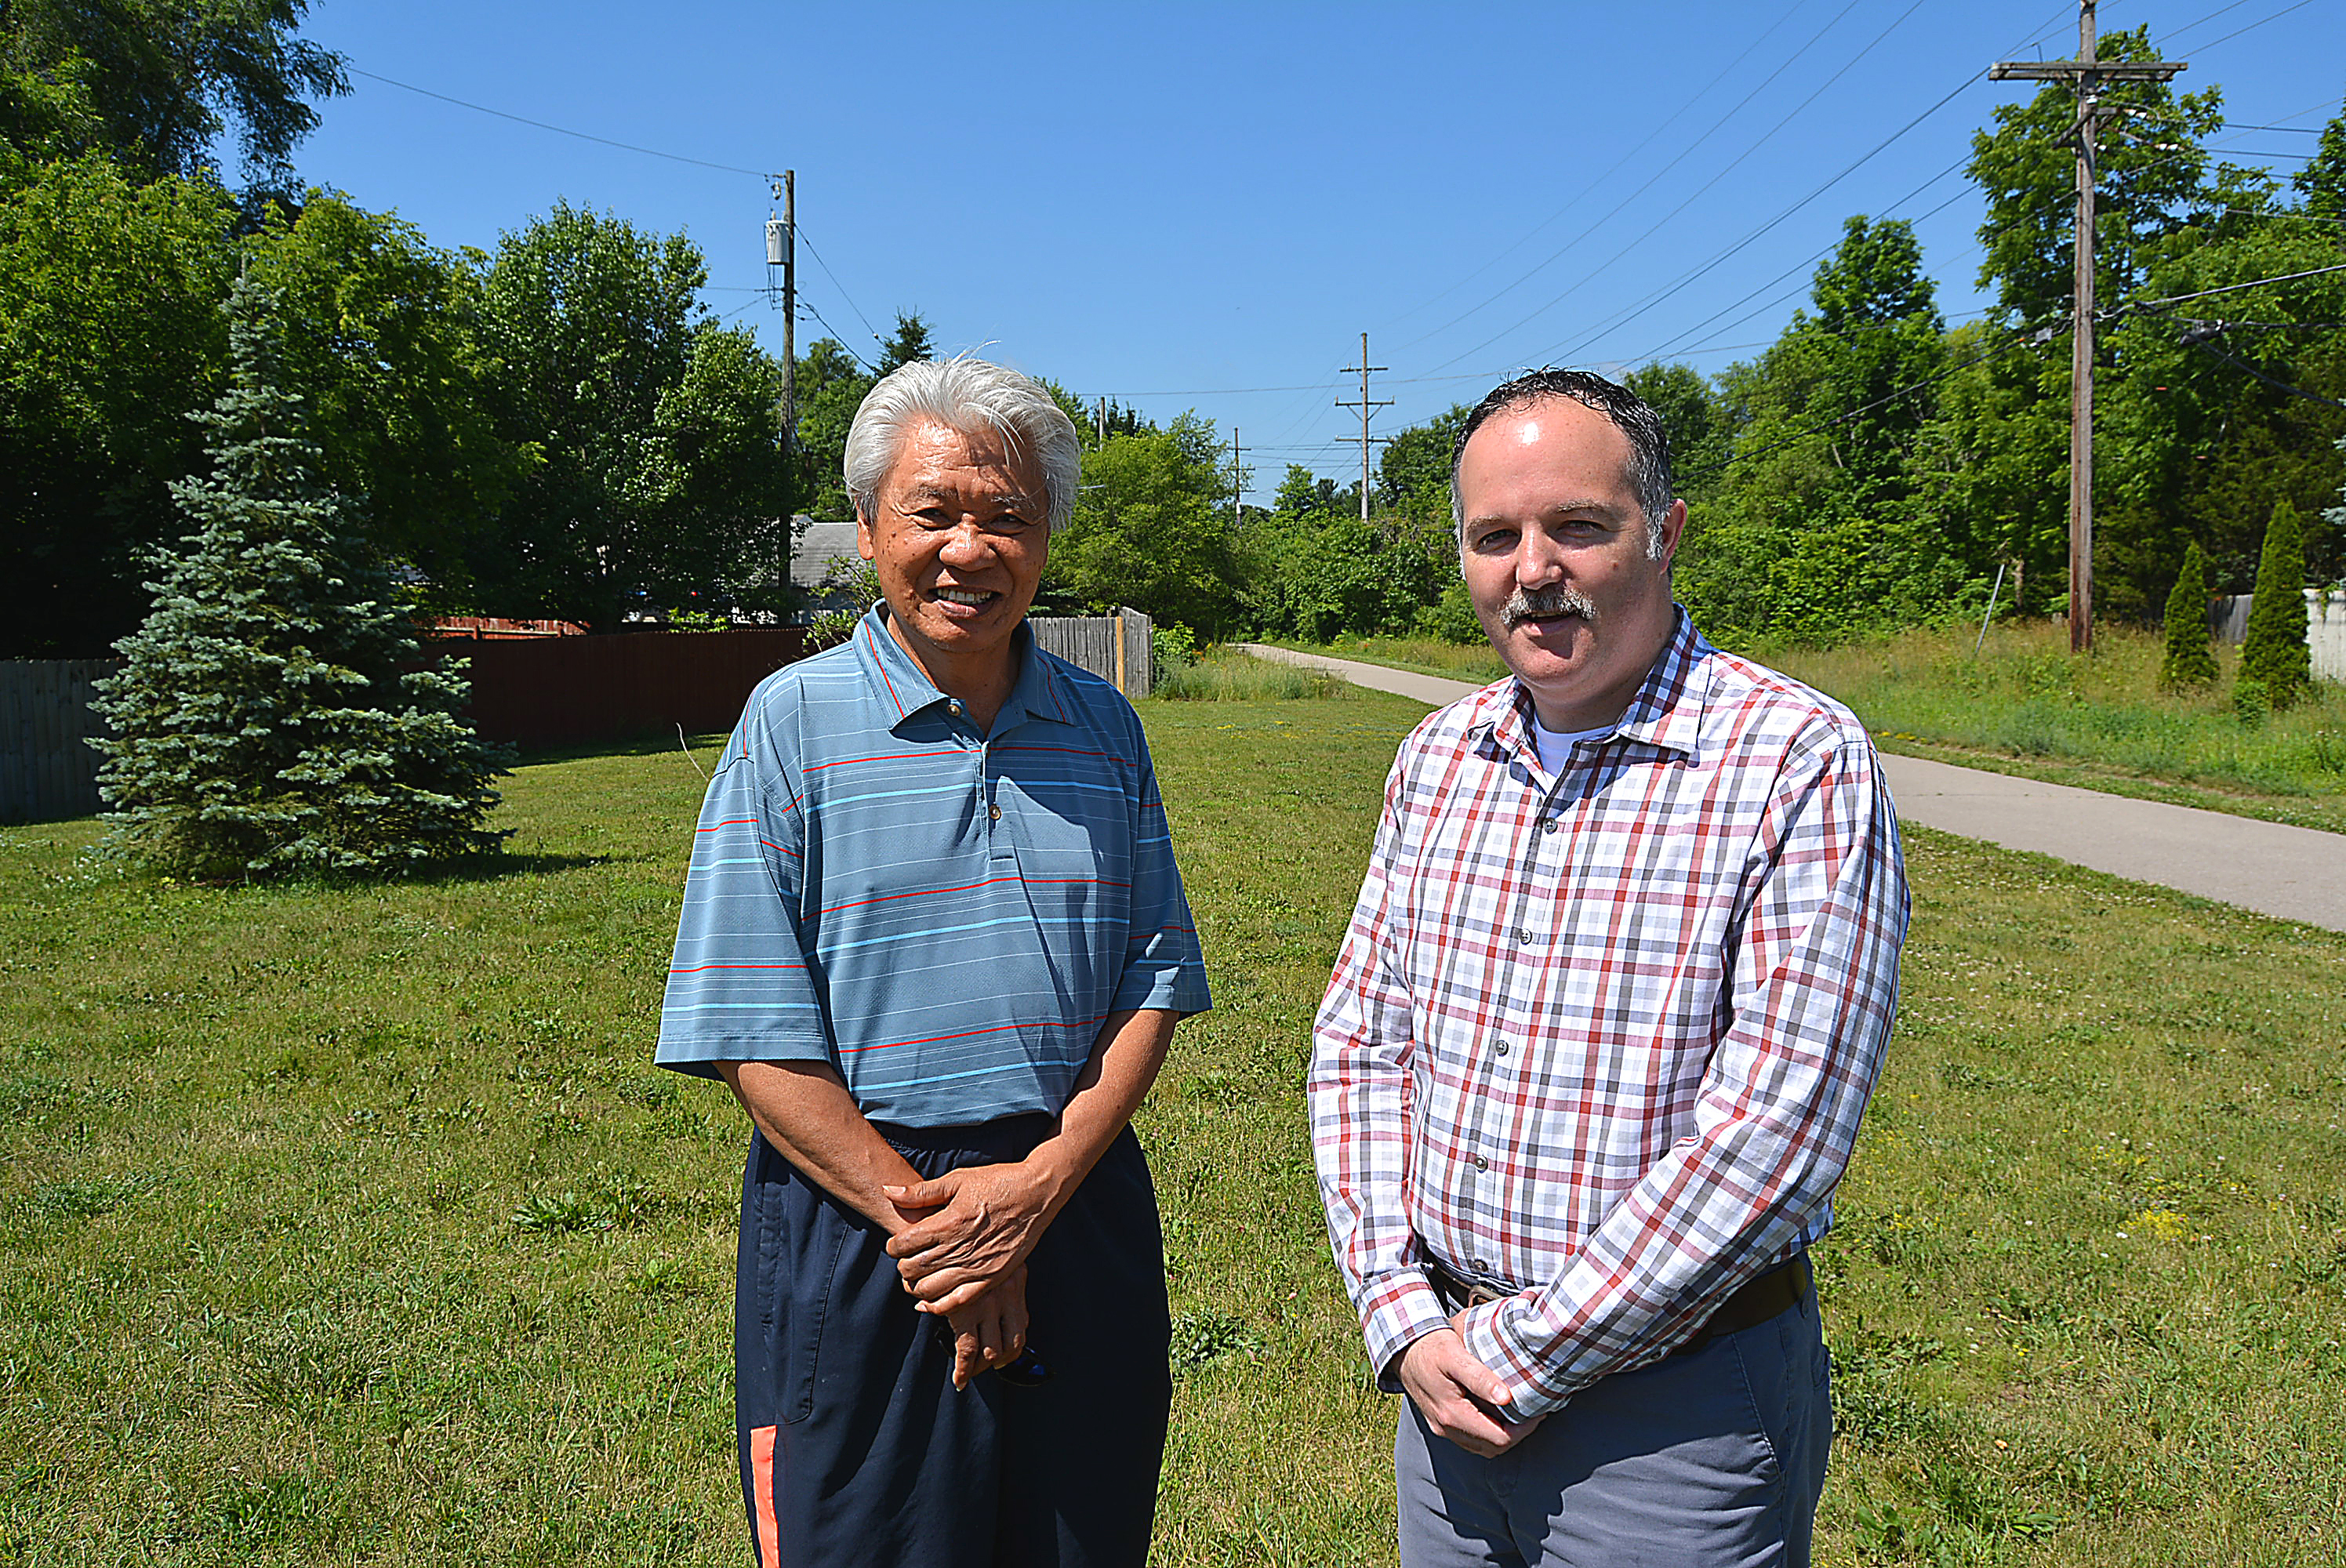 Dr. Joe Tunac (left), president of the Rotary Club of Oxford,  and Bryan Cloutier, the incoming club president, stand  on the vacant village land they wish to transform into a public park. Photo by C.J. Carnacchio.